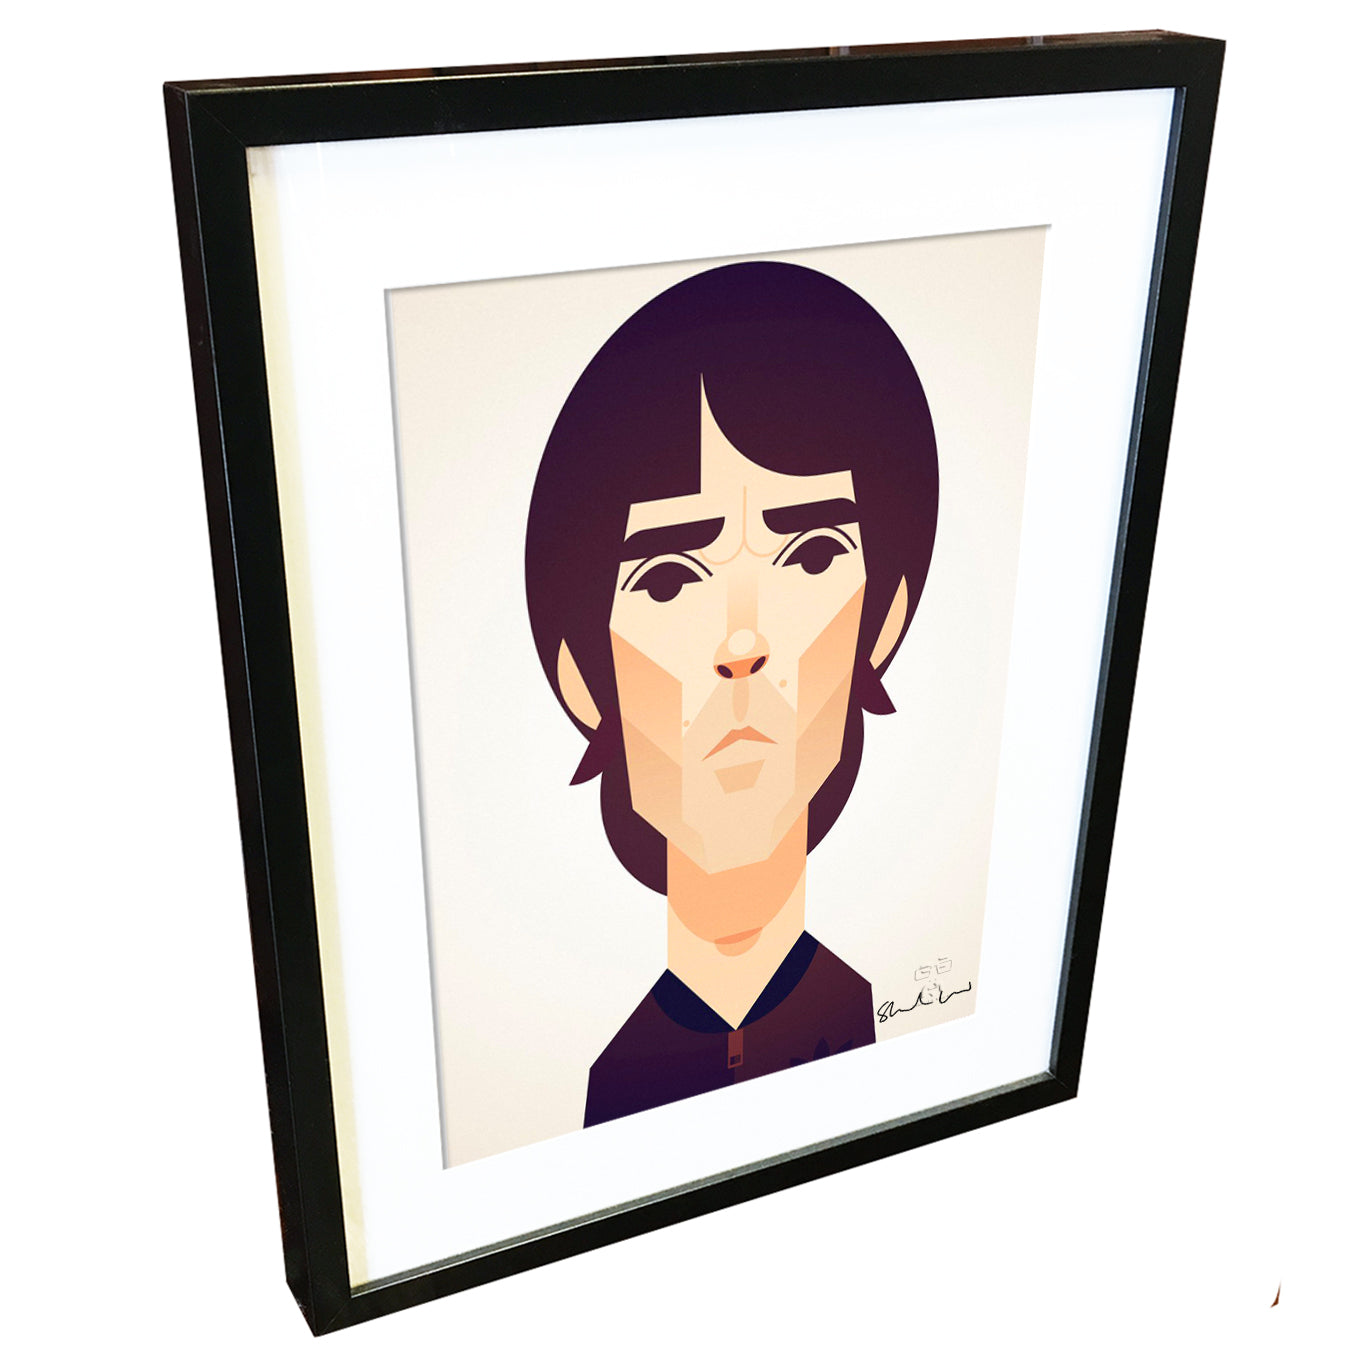 Ian Brown by Stanley Chow - Signed and stamped fine art print - Egoiste Gallery